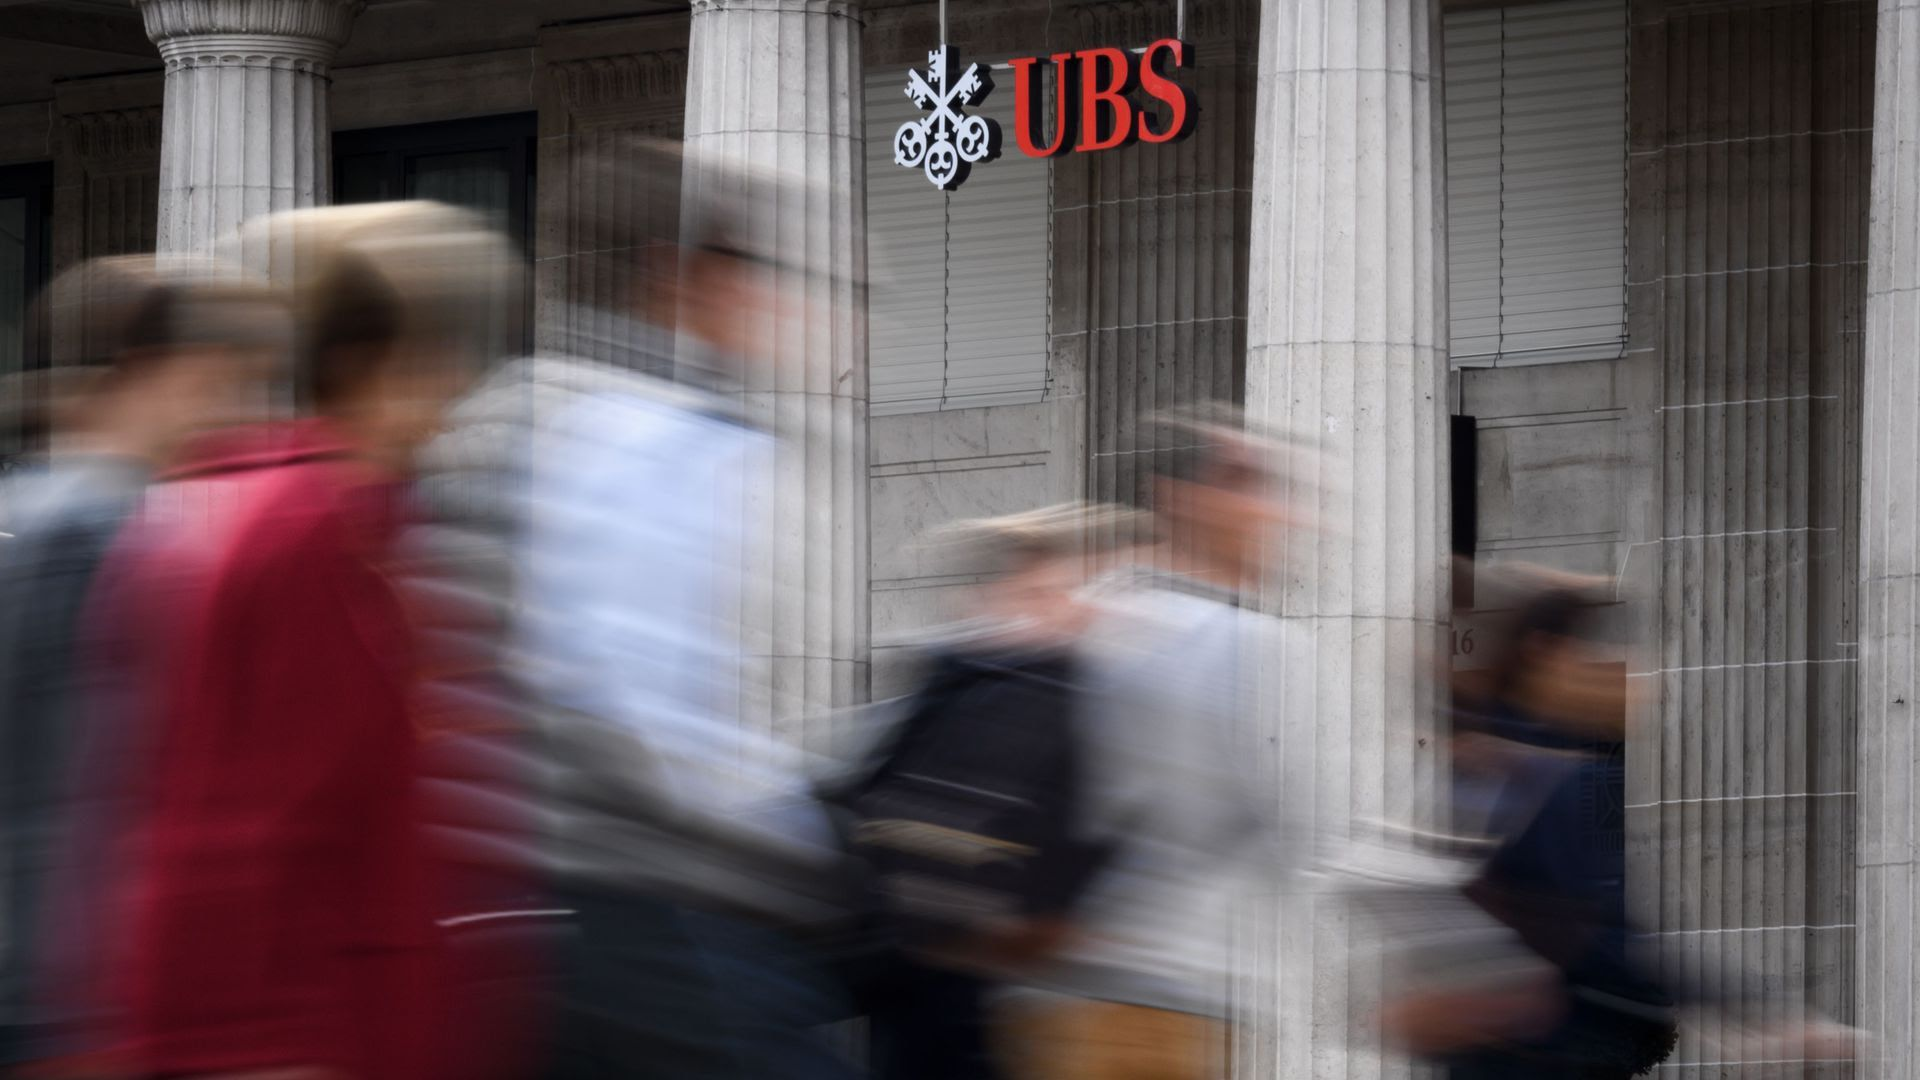 UBS front